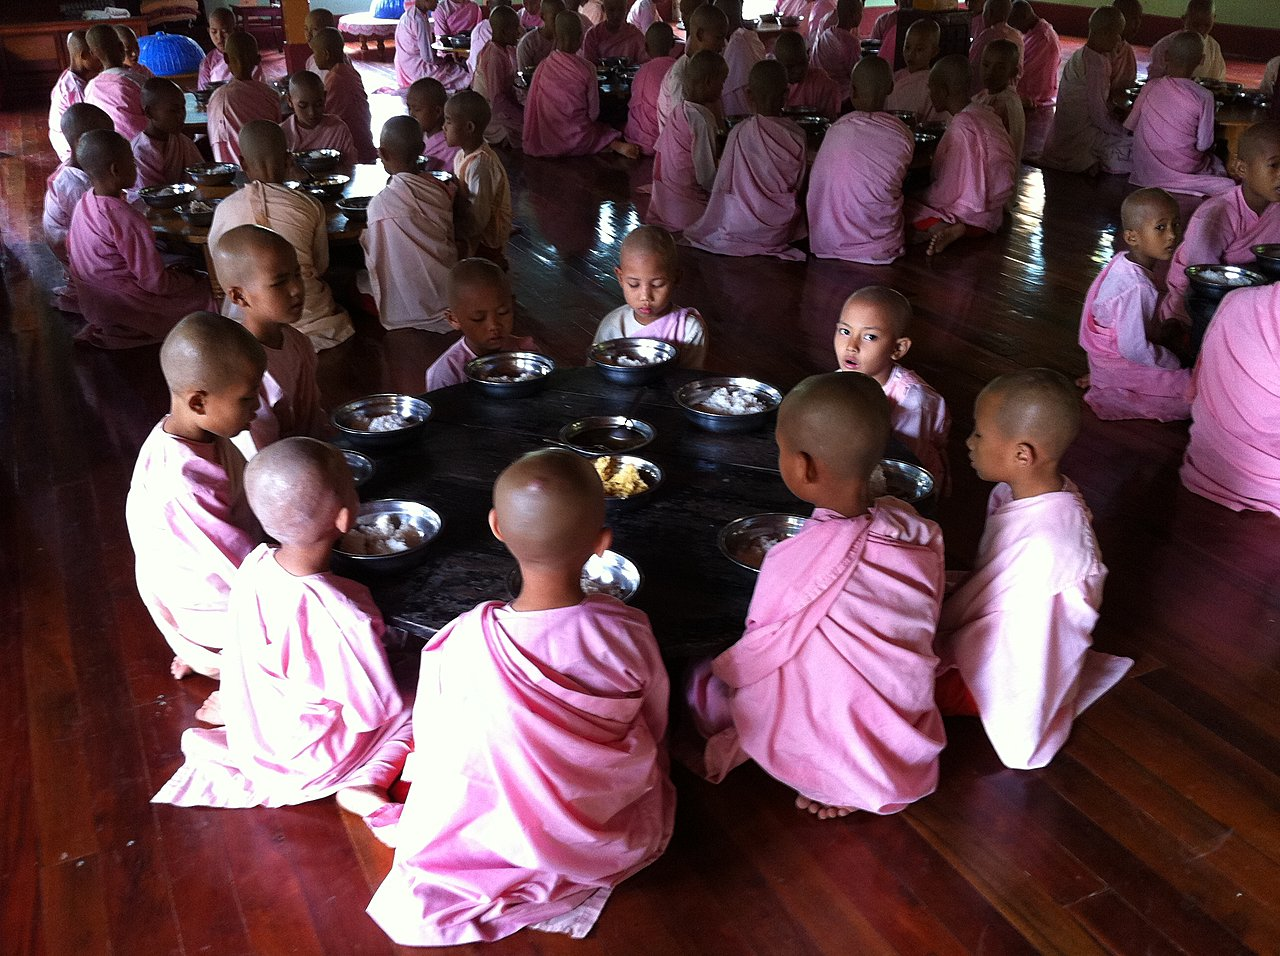 Novices waiting to begin lunch. | Photo taken by Rodney S